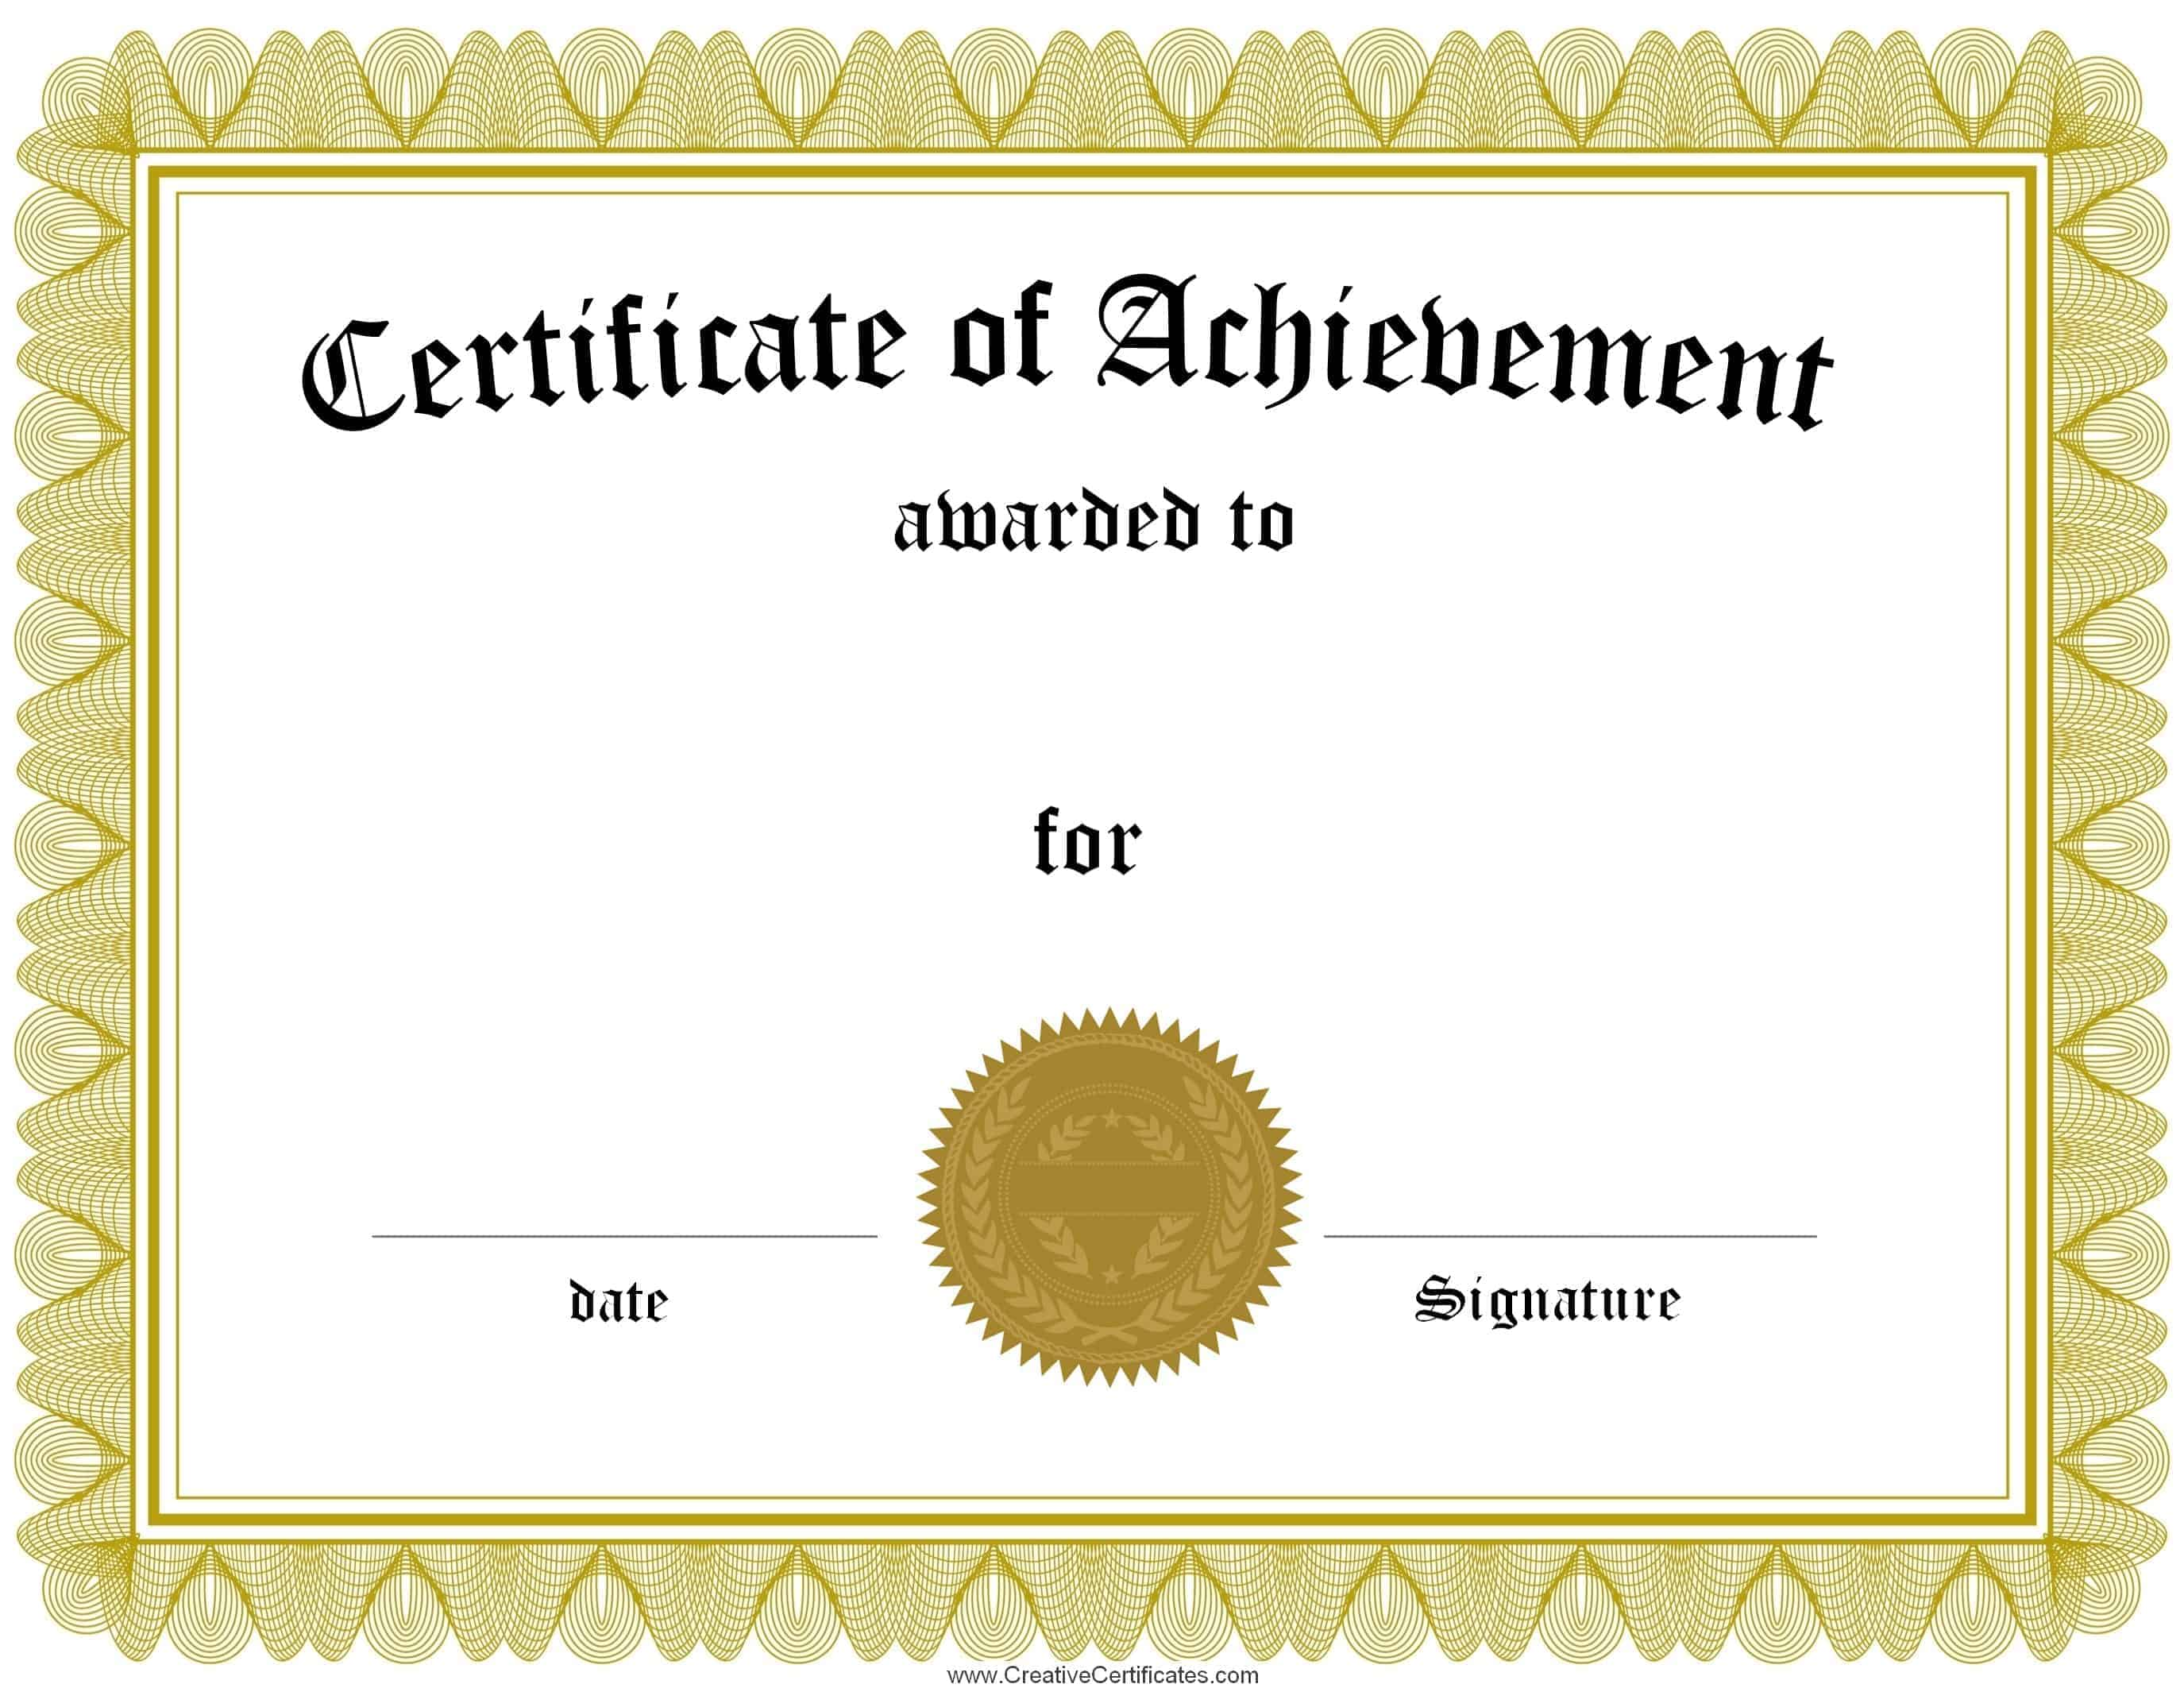 template for a certificate of achievement - free customizable certificate of achievement